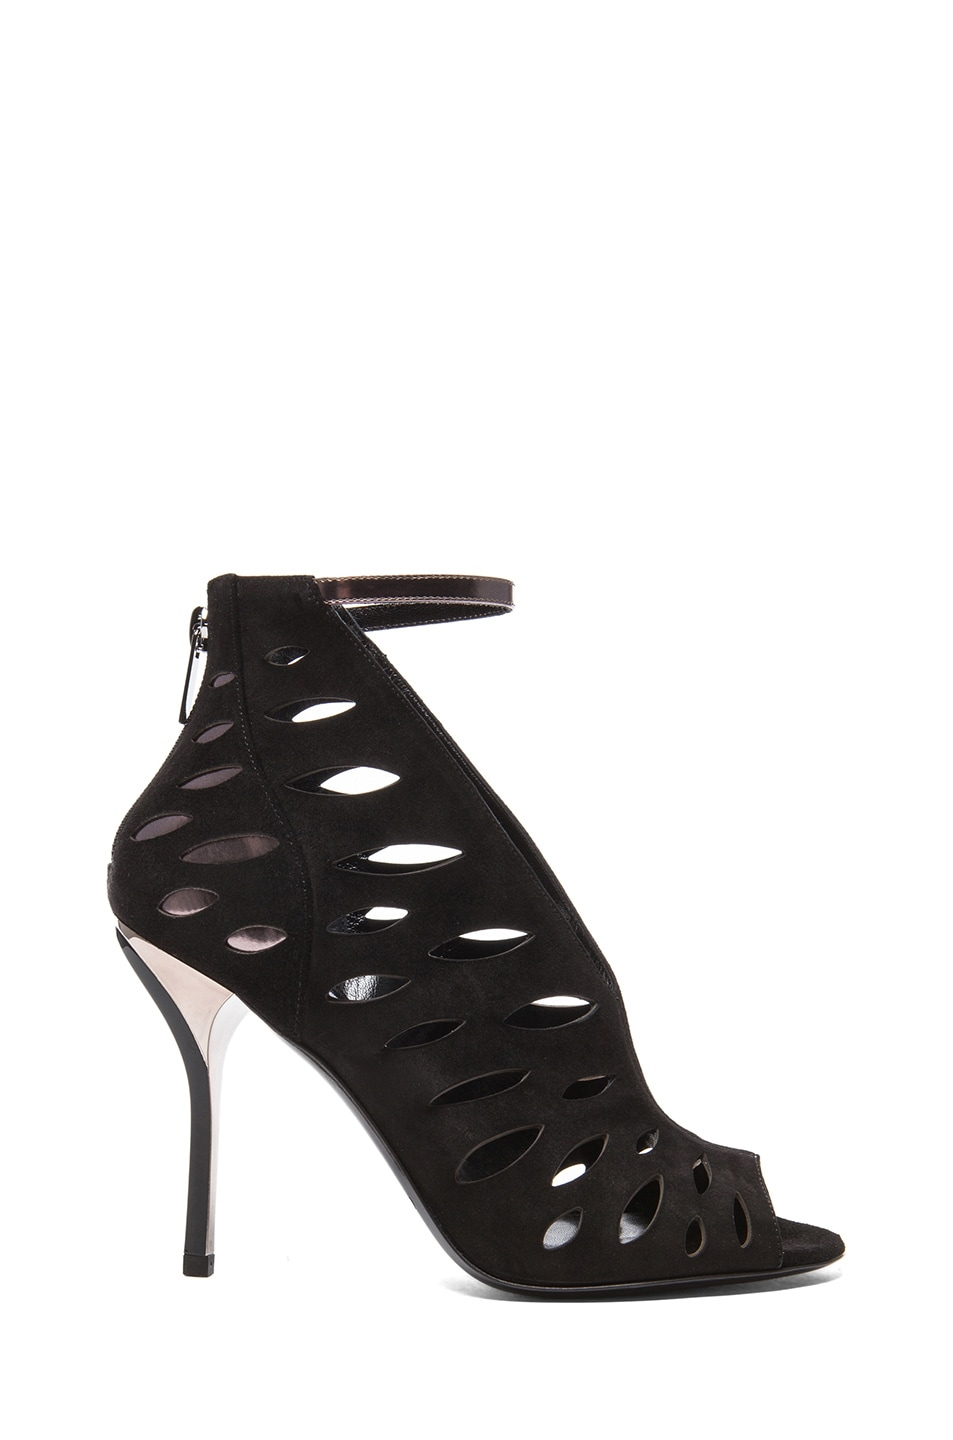 Image 1 of Jimmy Choo Tamera Suede Heeled Sandals in Black & Anthracite